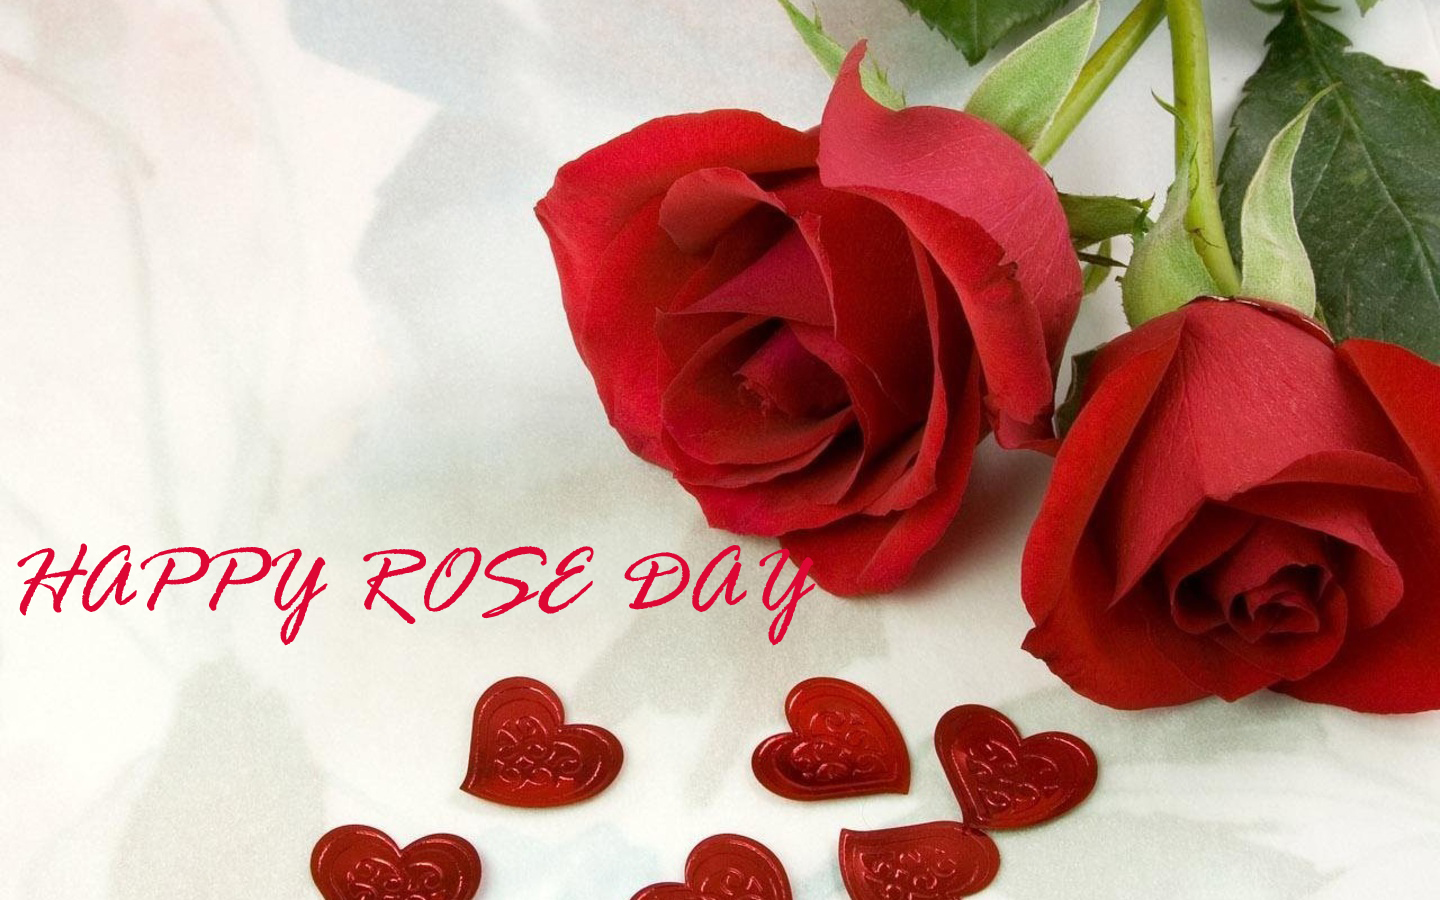 Rose Day Images, Pics, Quotes, Wishes, Photos